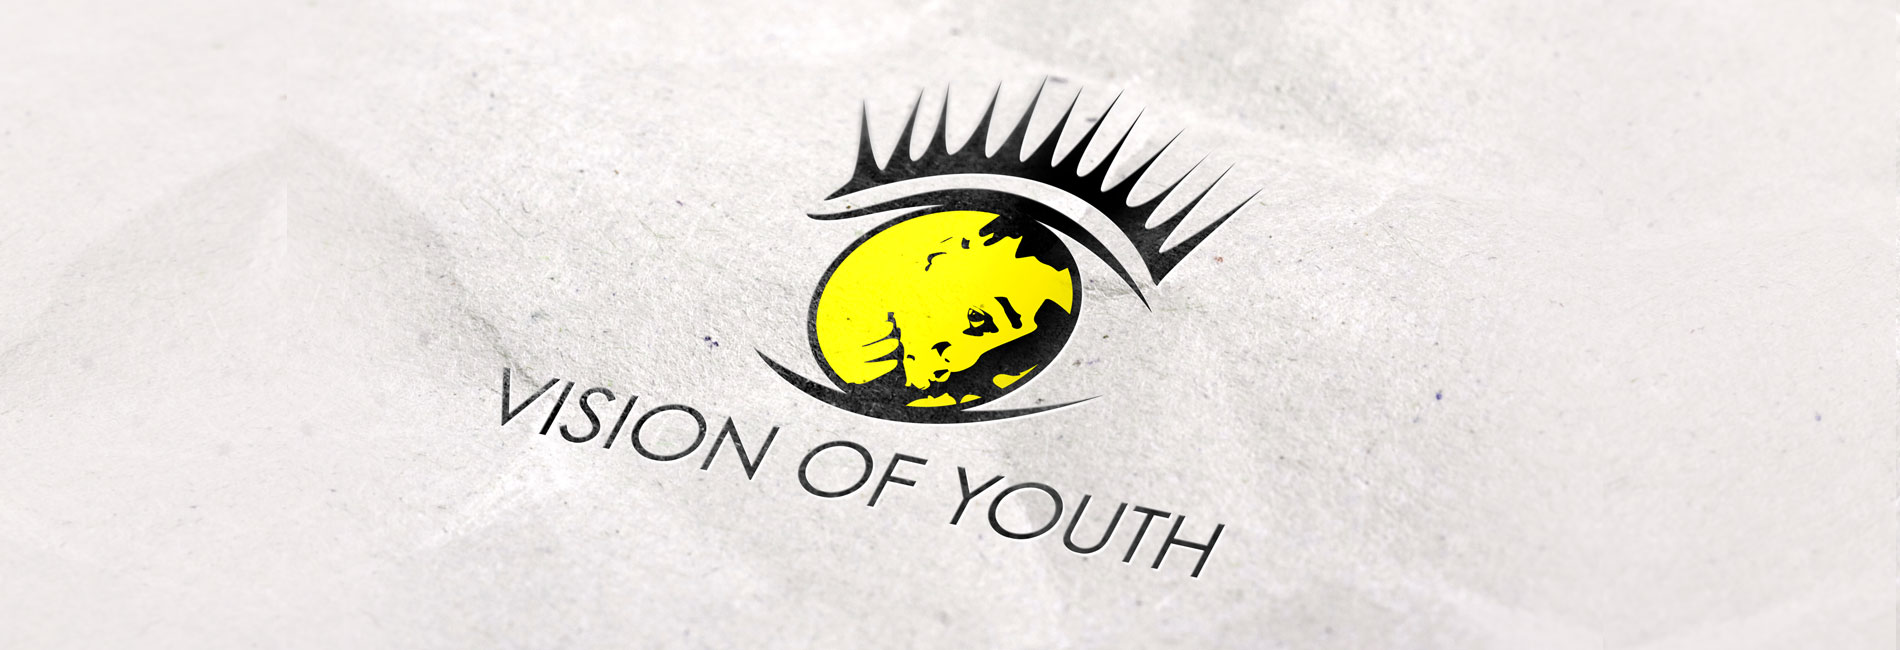 vision of youth logo